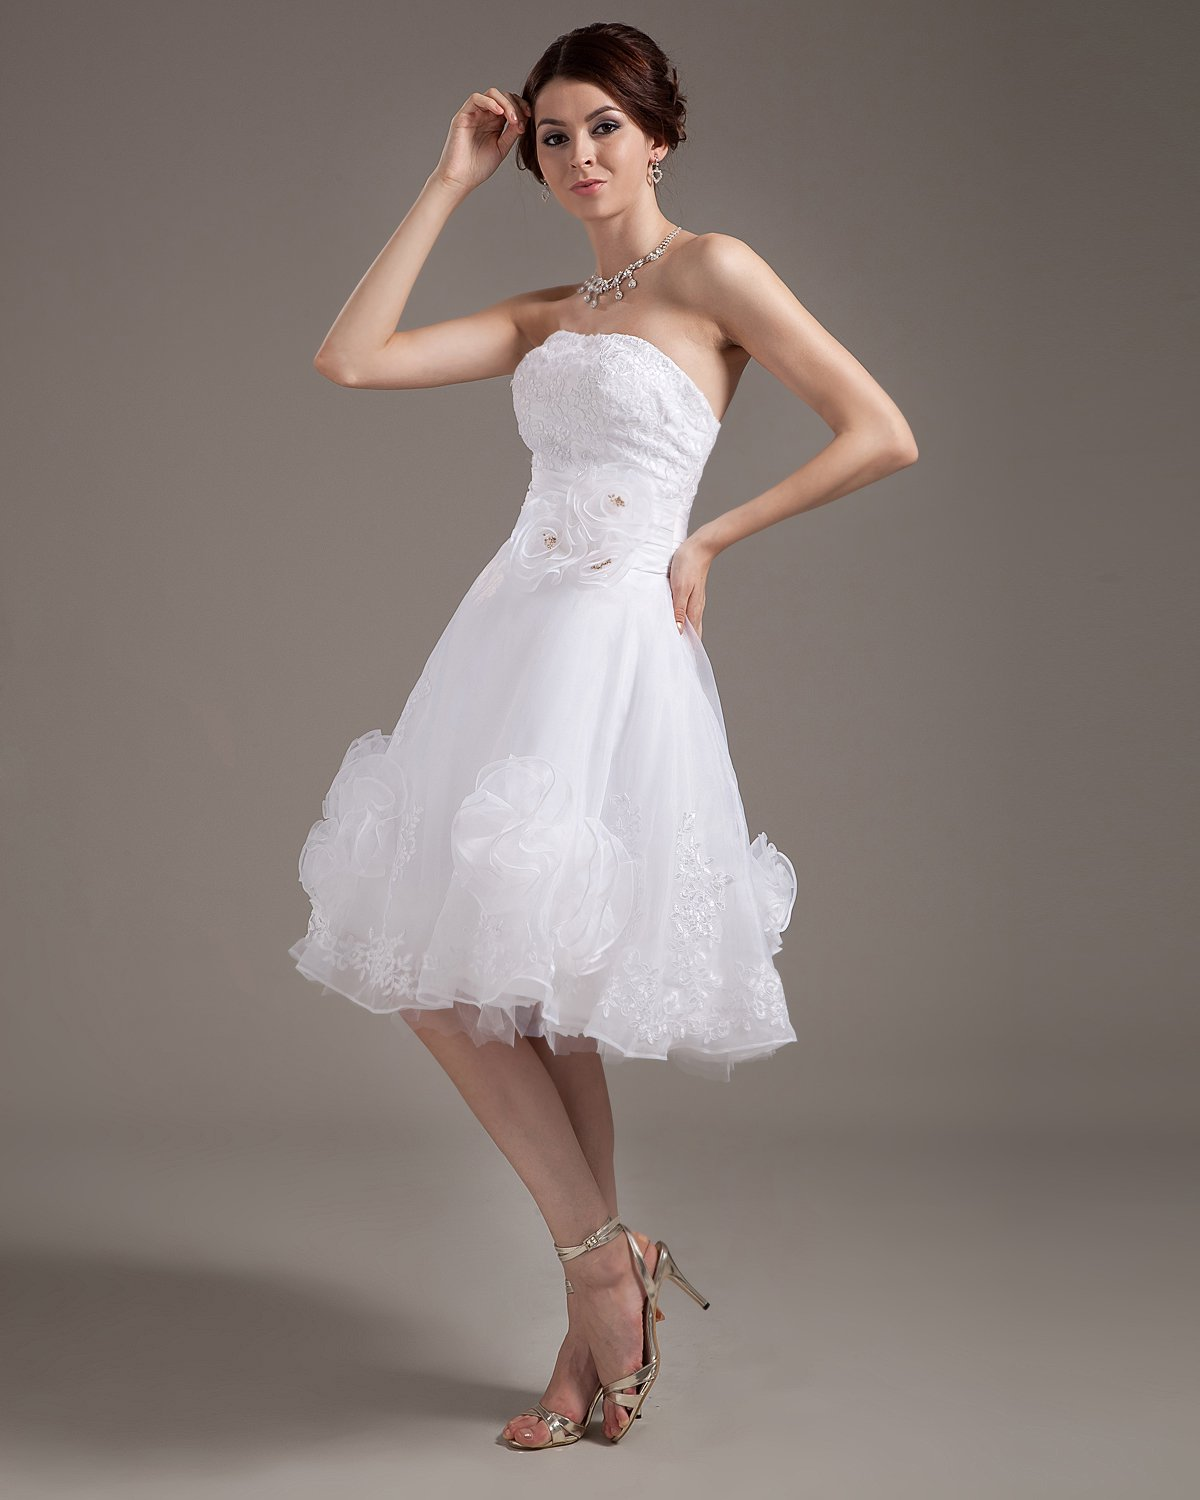 Yarn Strapless Layered Short Bridal Gown Wedding Dresses